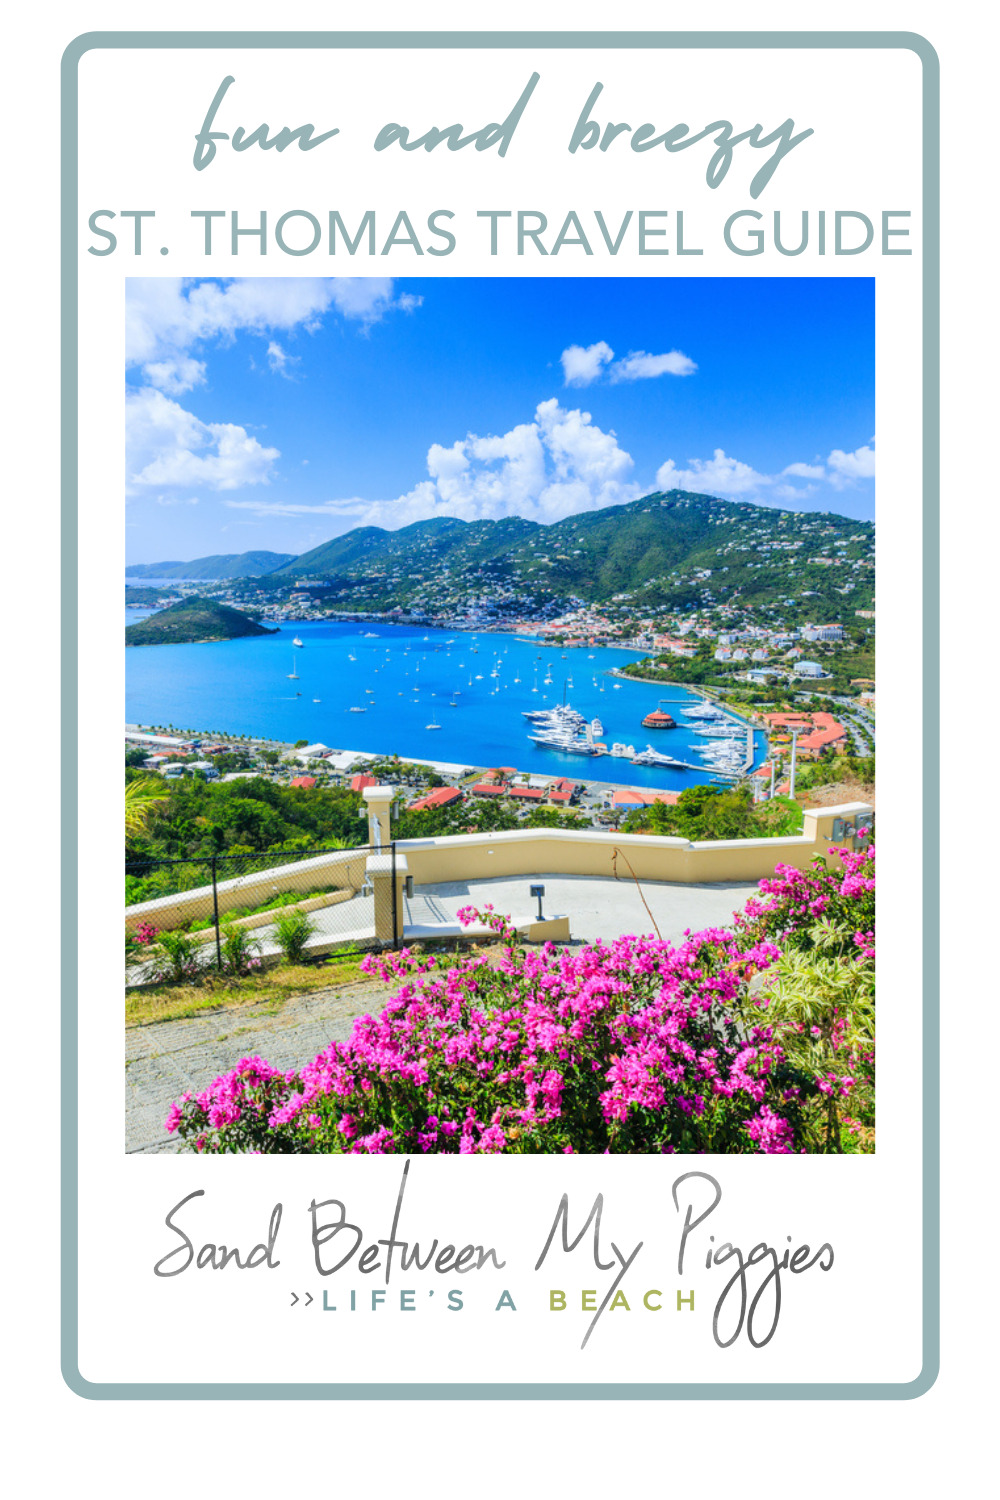 Sandbetweenmypiggies.com is all about the good life. Take a deep breath with travel and beach inspired ideas. Take a relaxing trip to beautiful St. Thomas. Find out all of the things you need to see and do in the Virgin Islands!